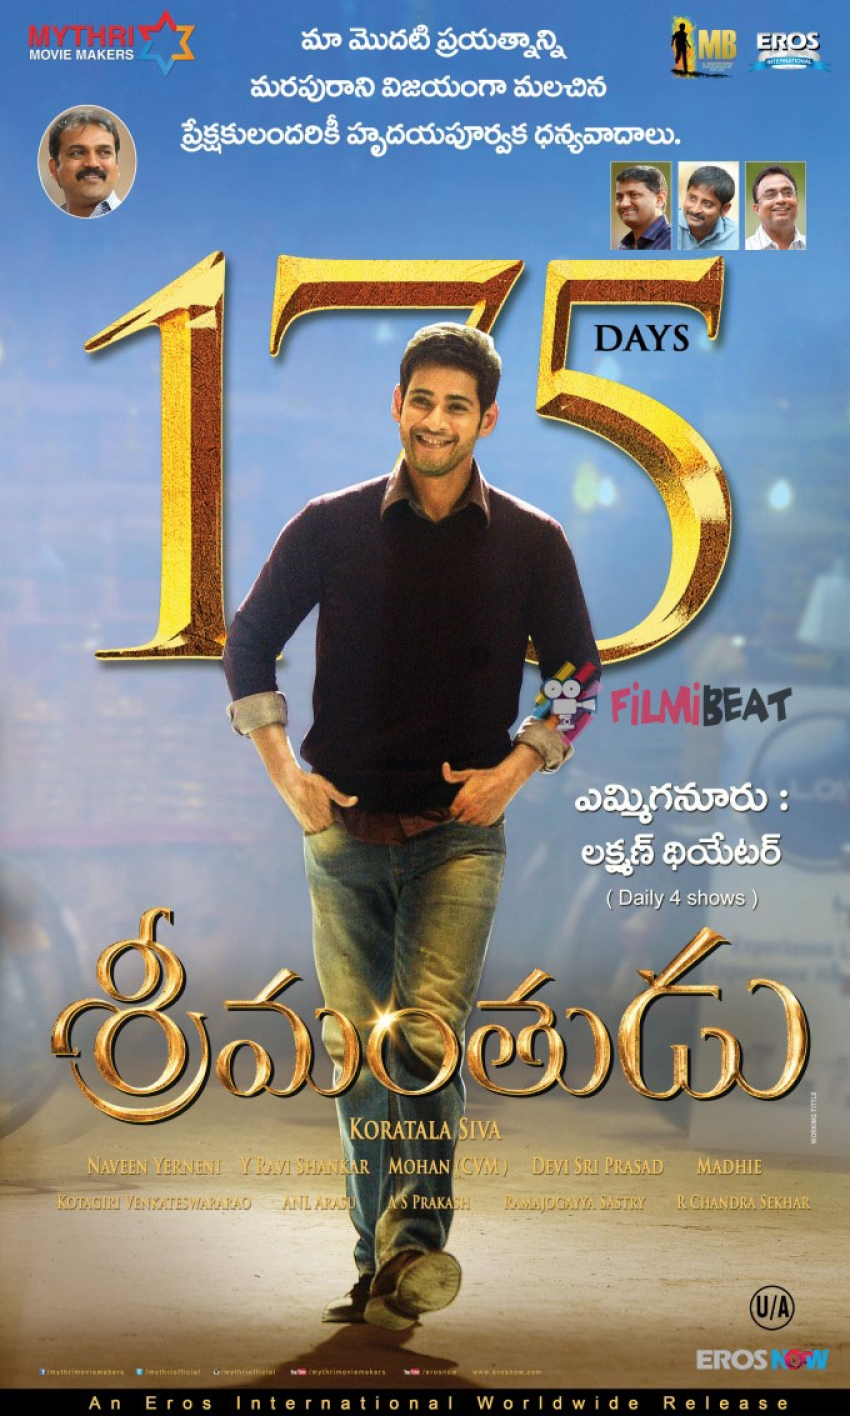 Srimanthudu Photos: HD Images, Pictures, Stills, First Look